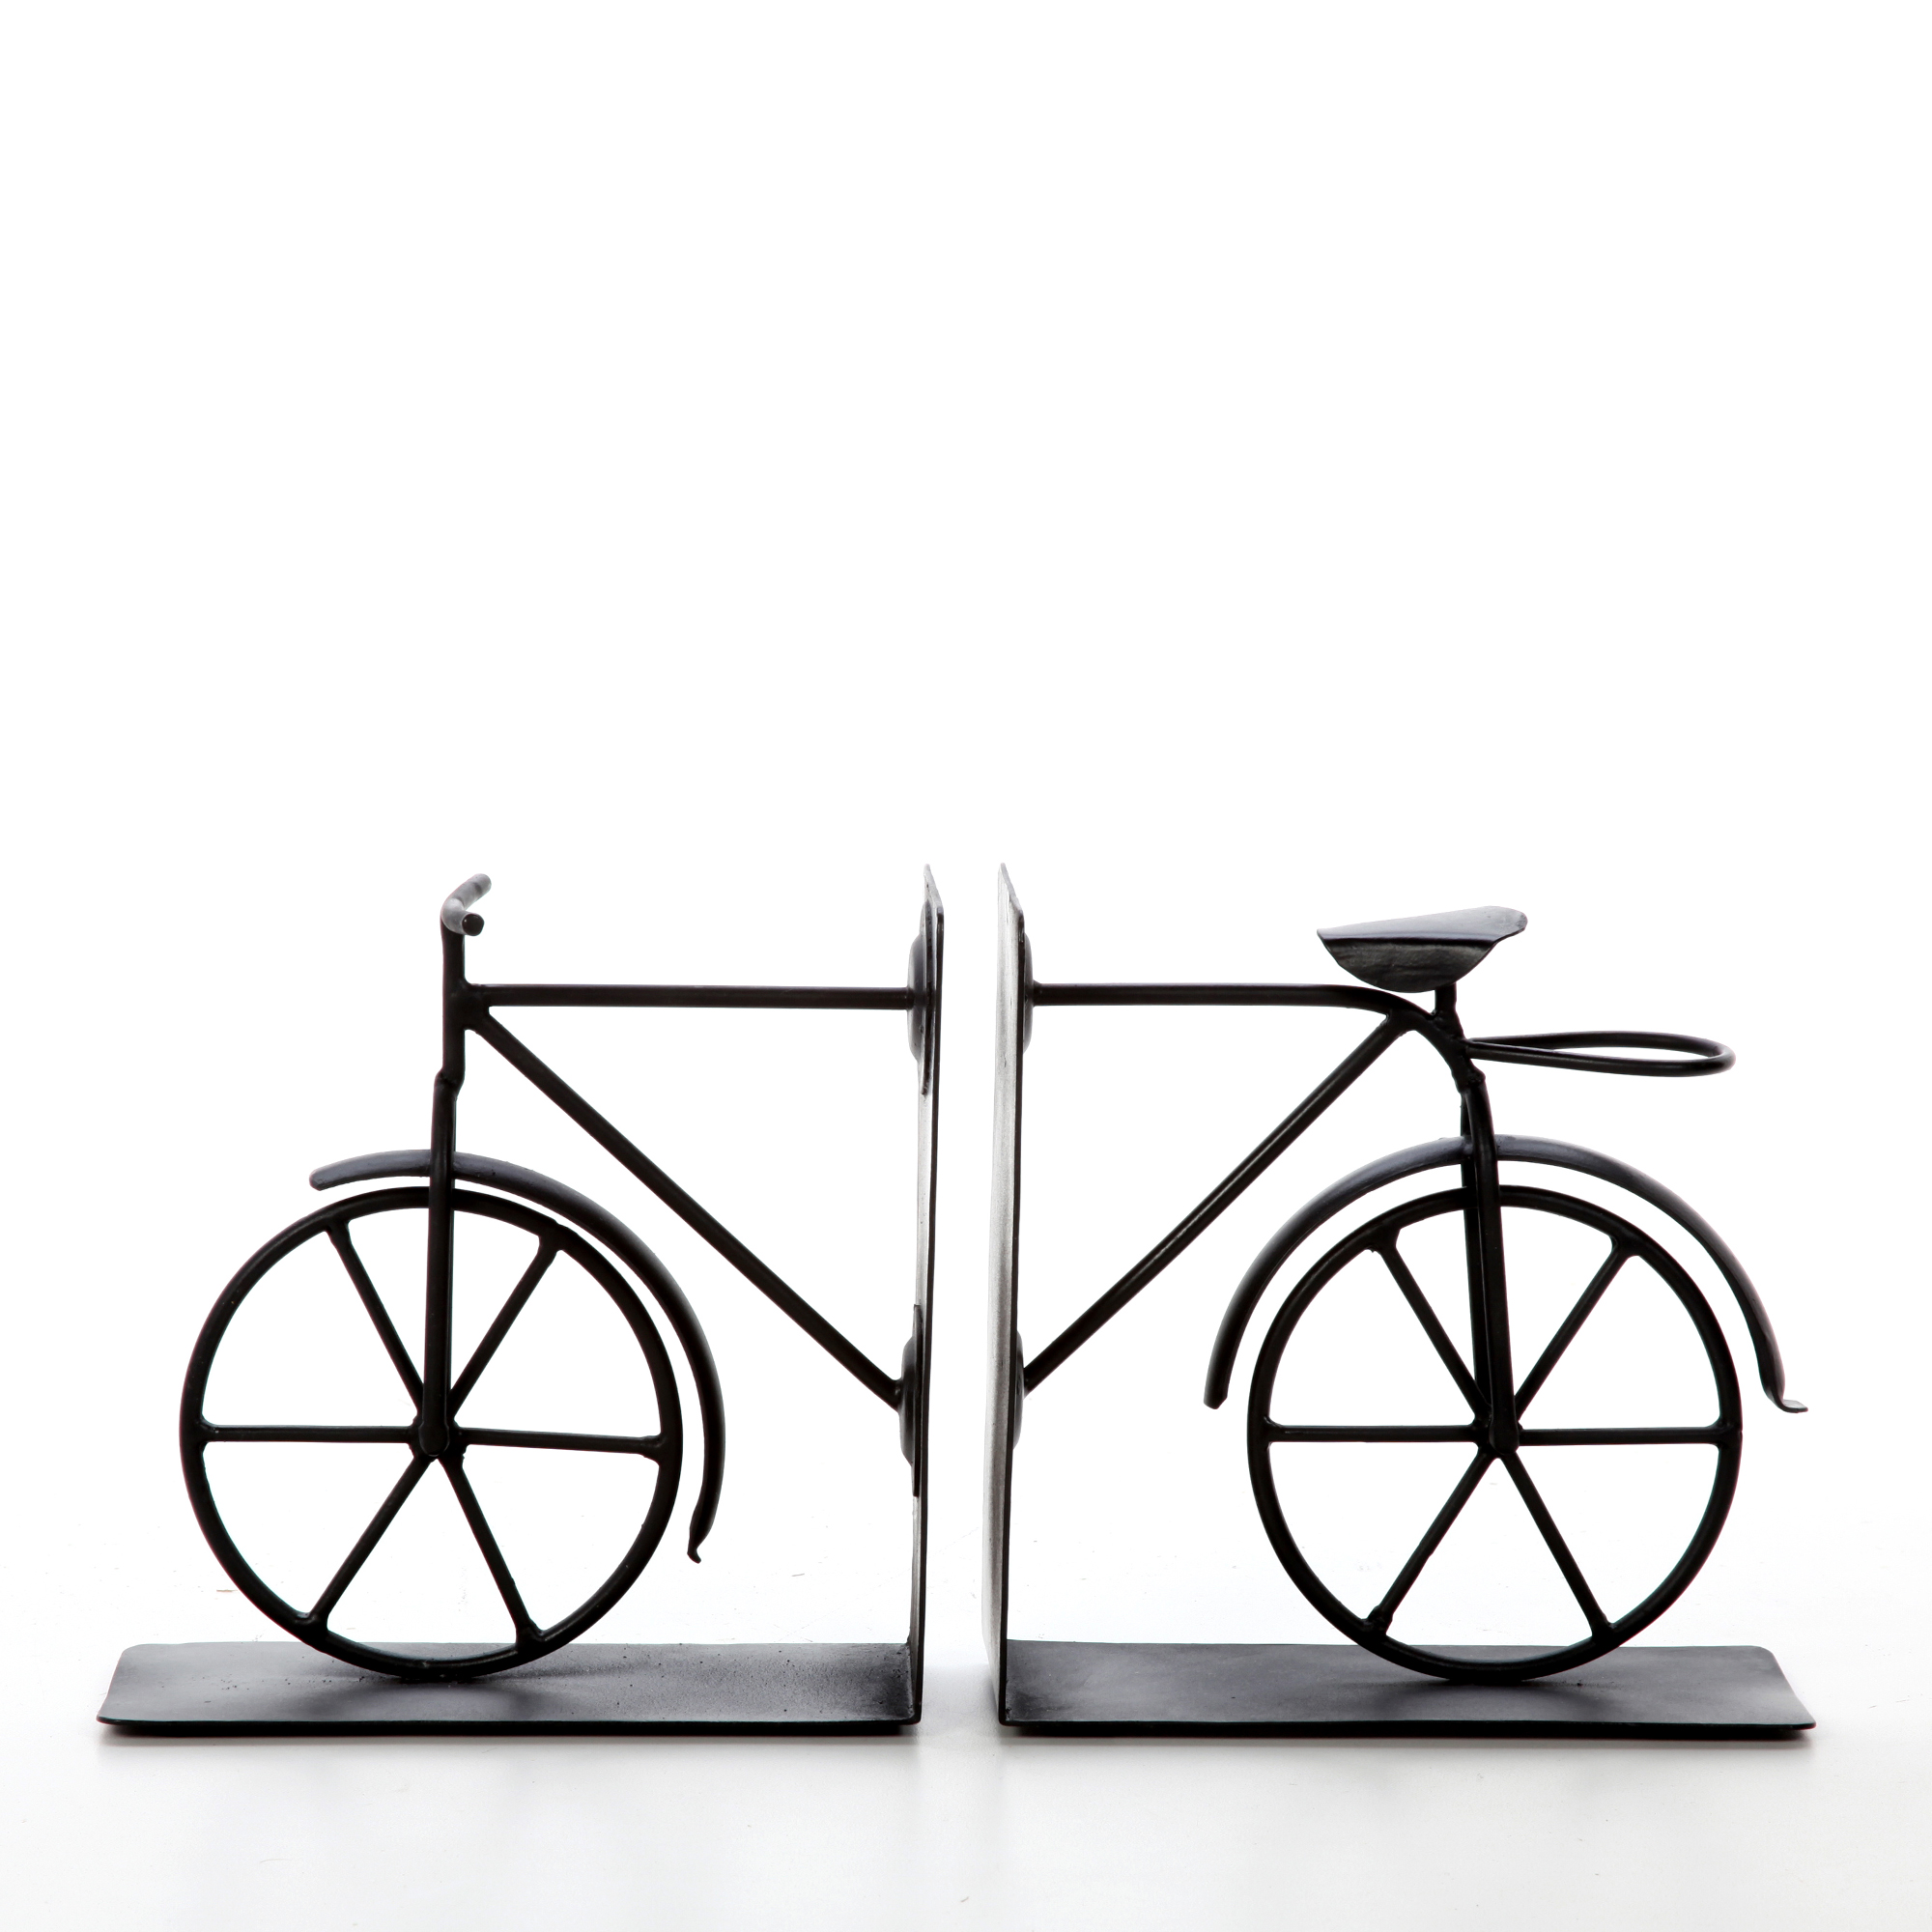 Decorative Tabletop Bicycle Bookend Black, Set of 2 by Generic